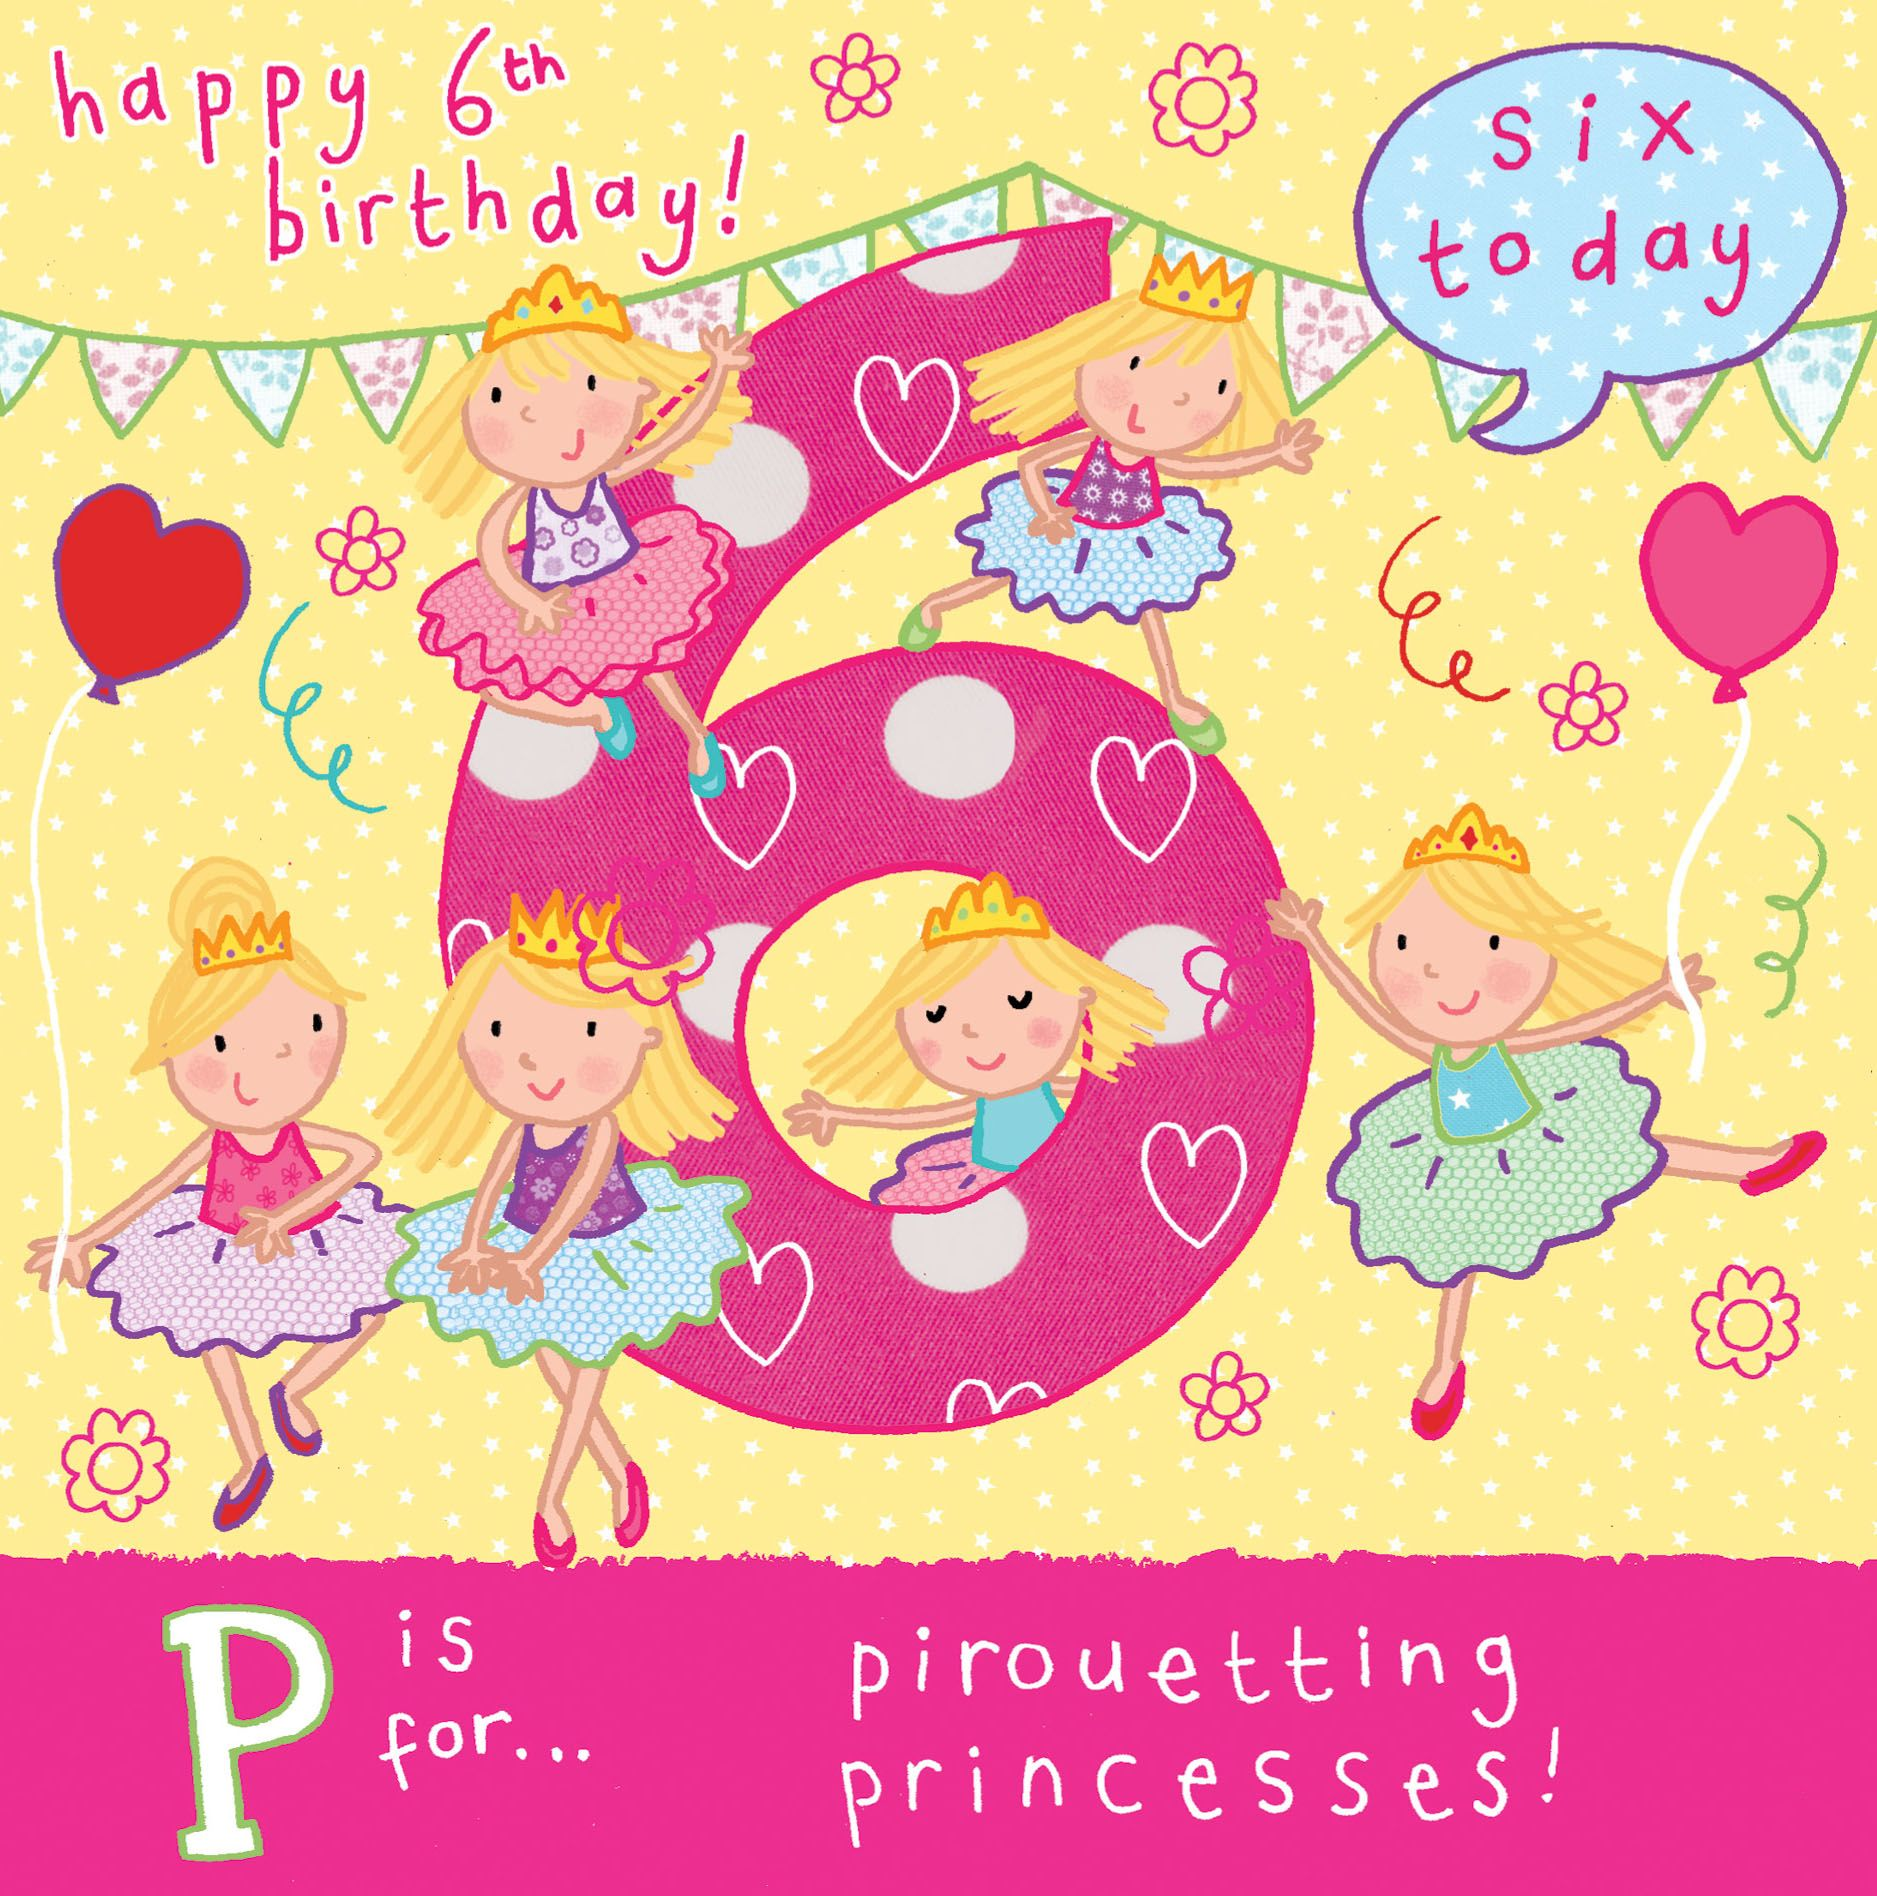 Age 6 Princess Birthday Card Tw056 4436 P